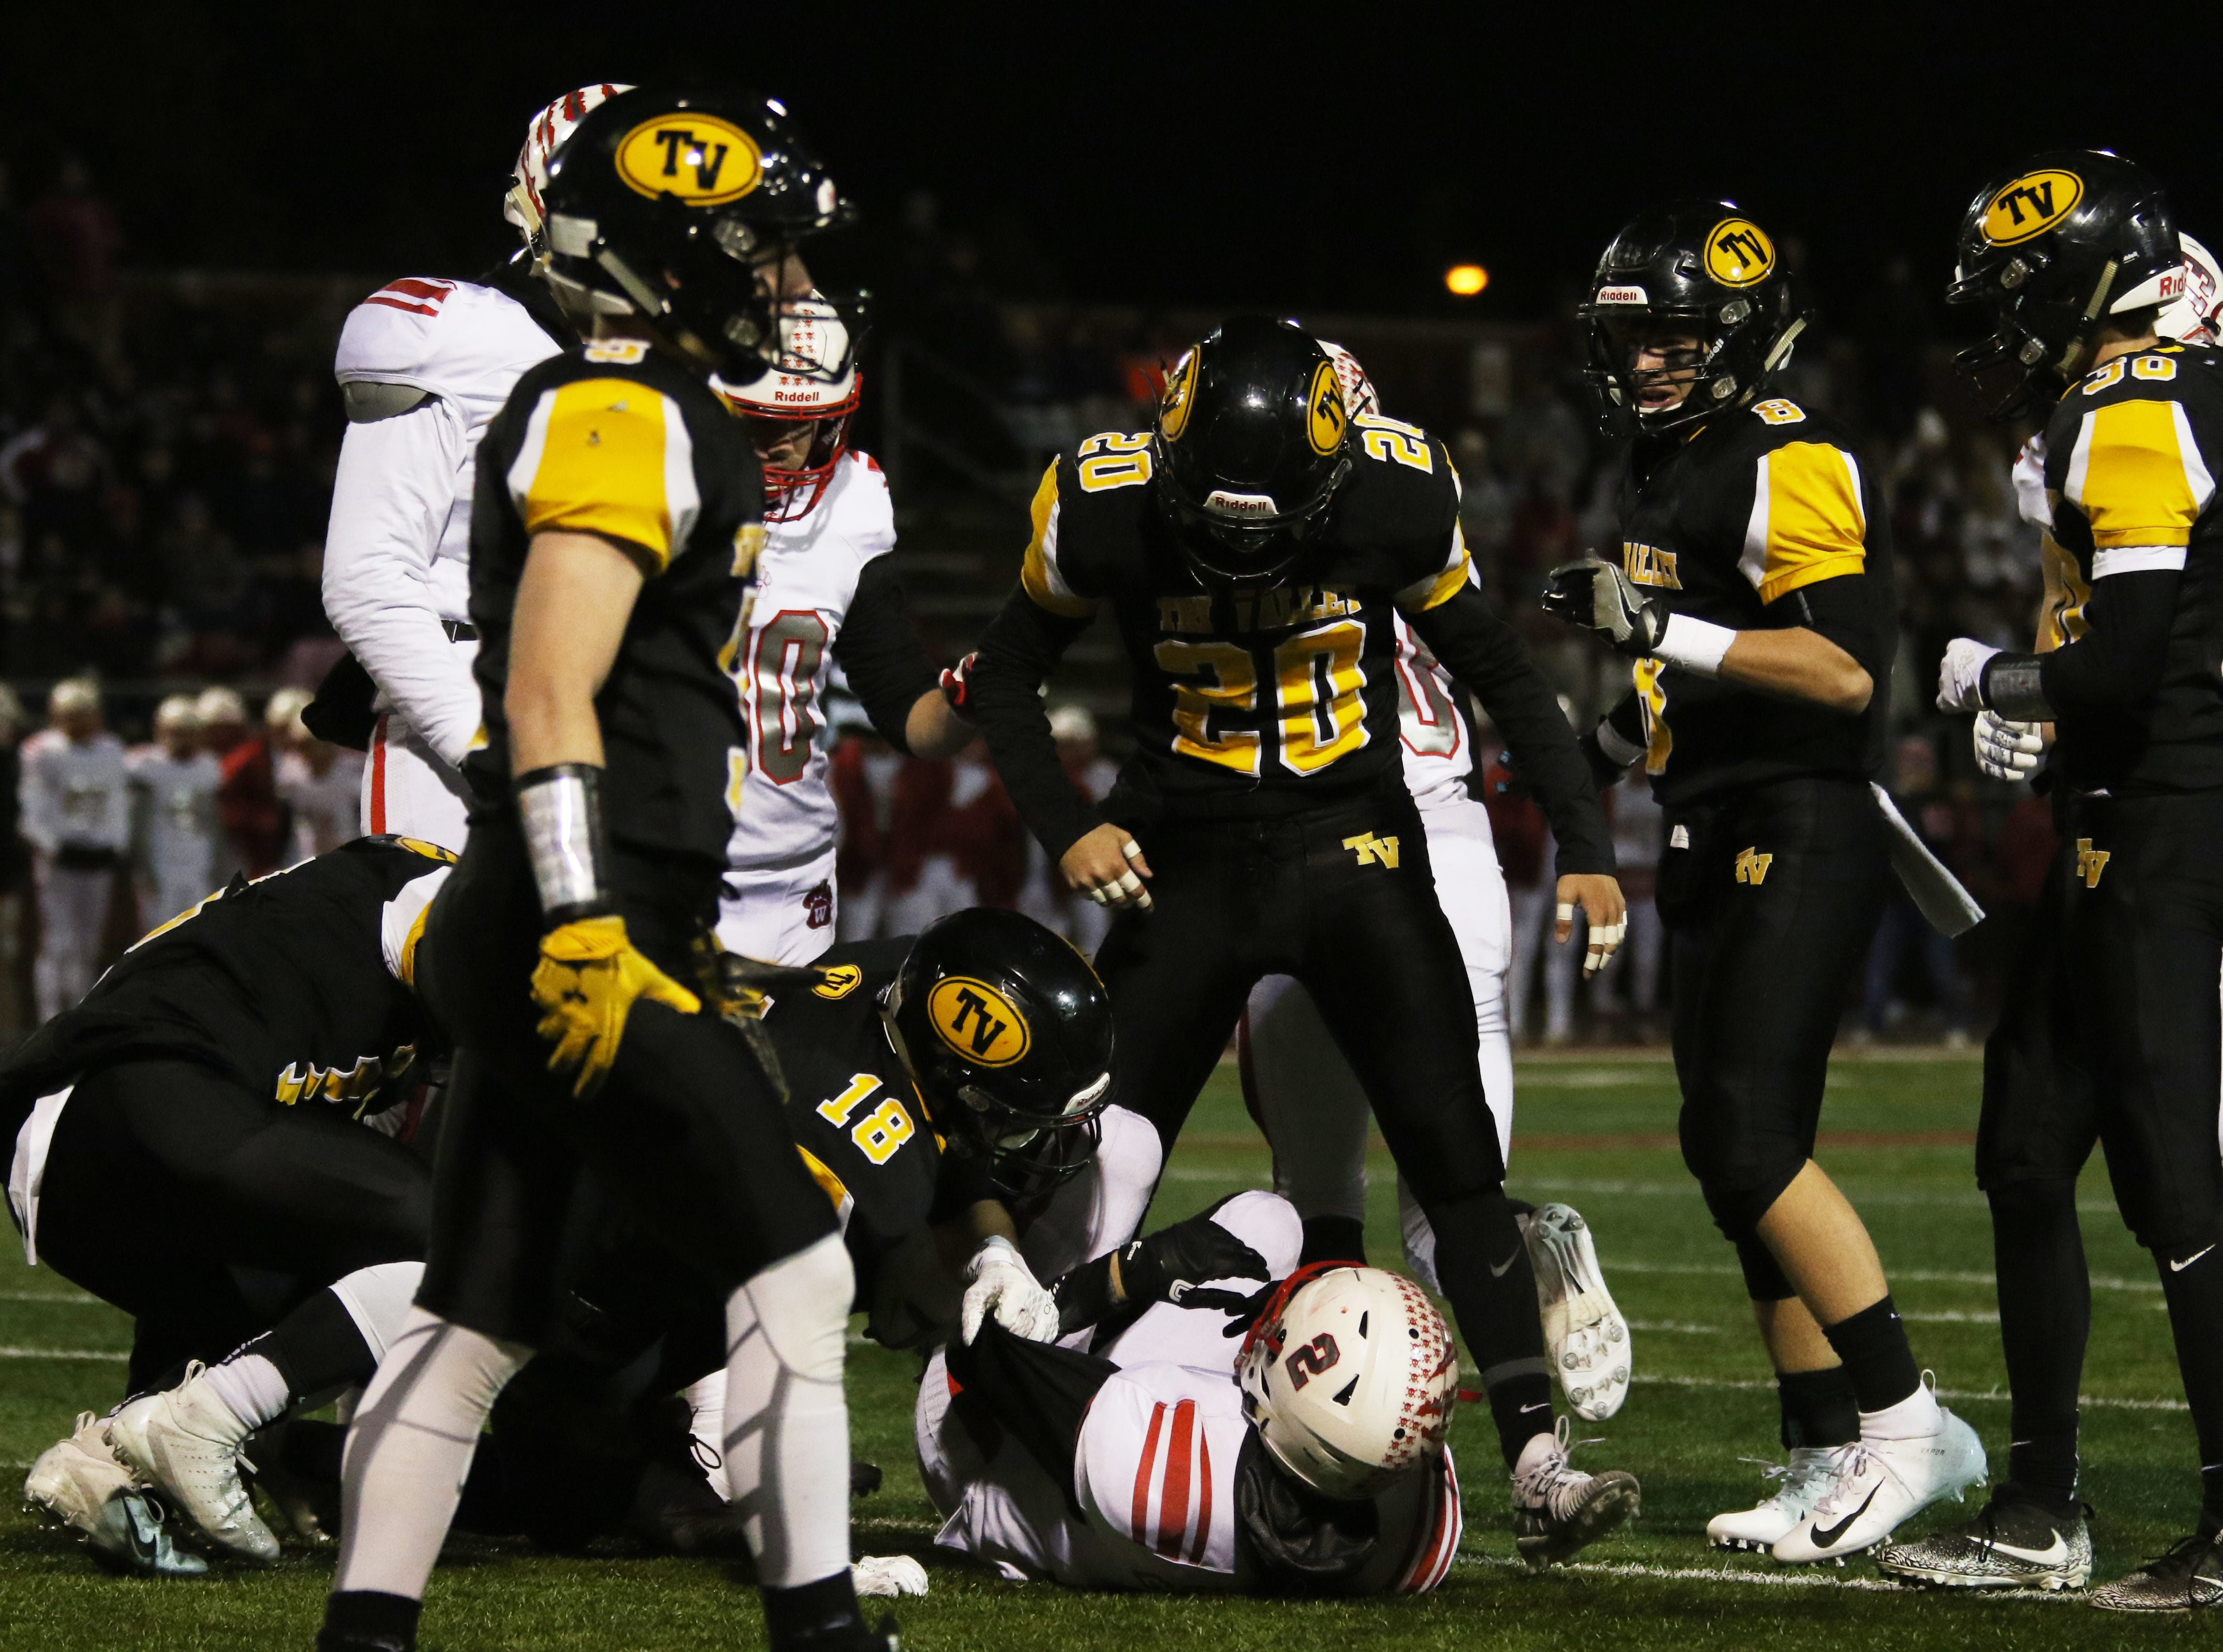 Tri-Valley's Hudson Brown makes his presence known to a Wadsworth ball carrier.